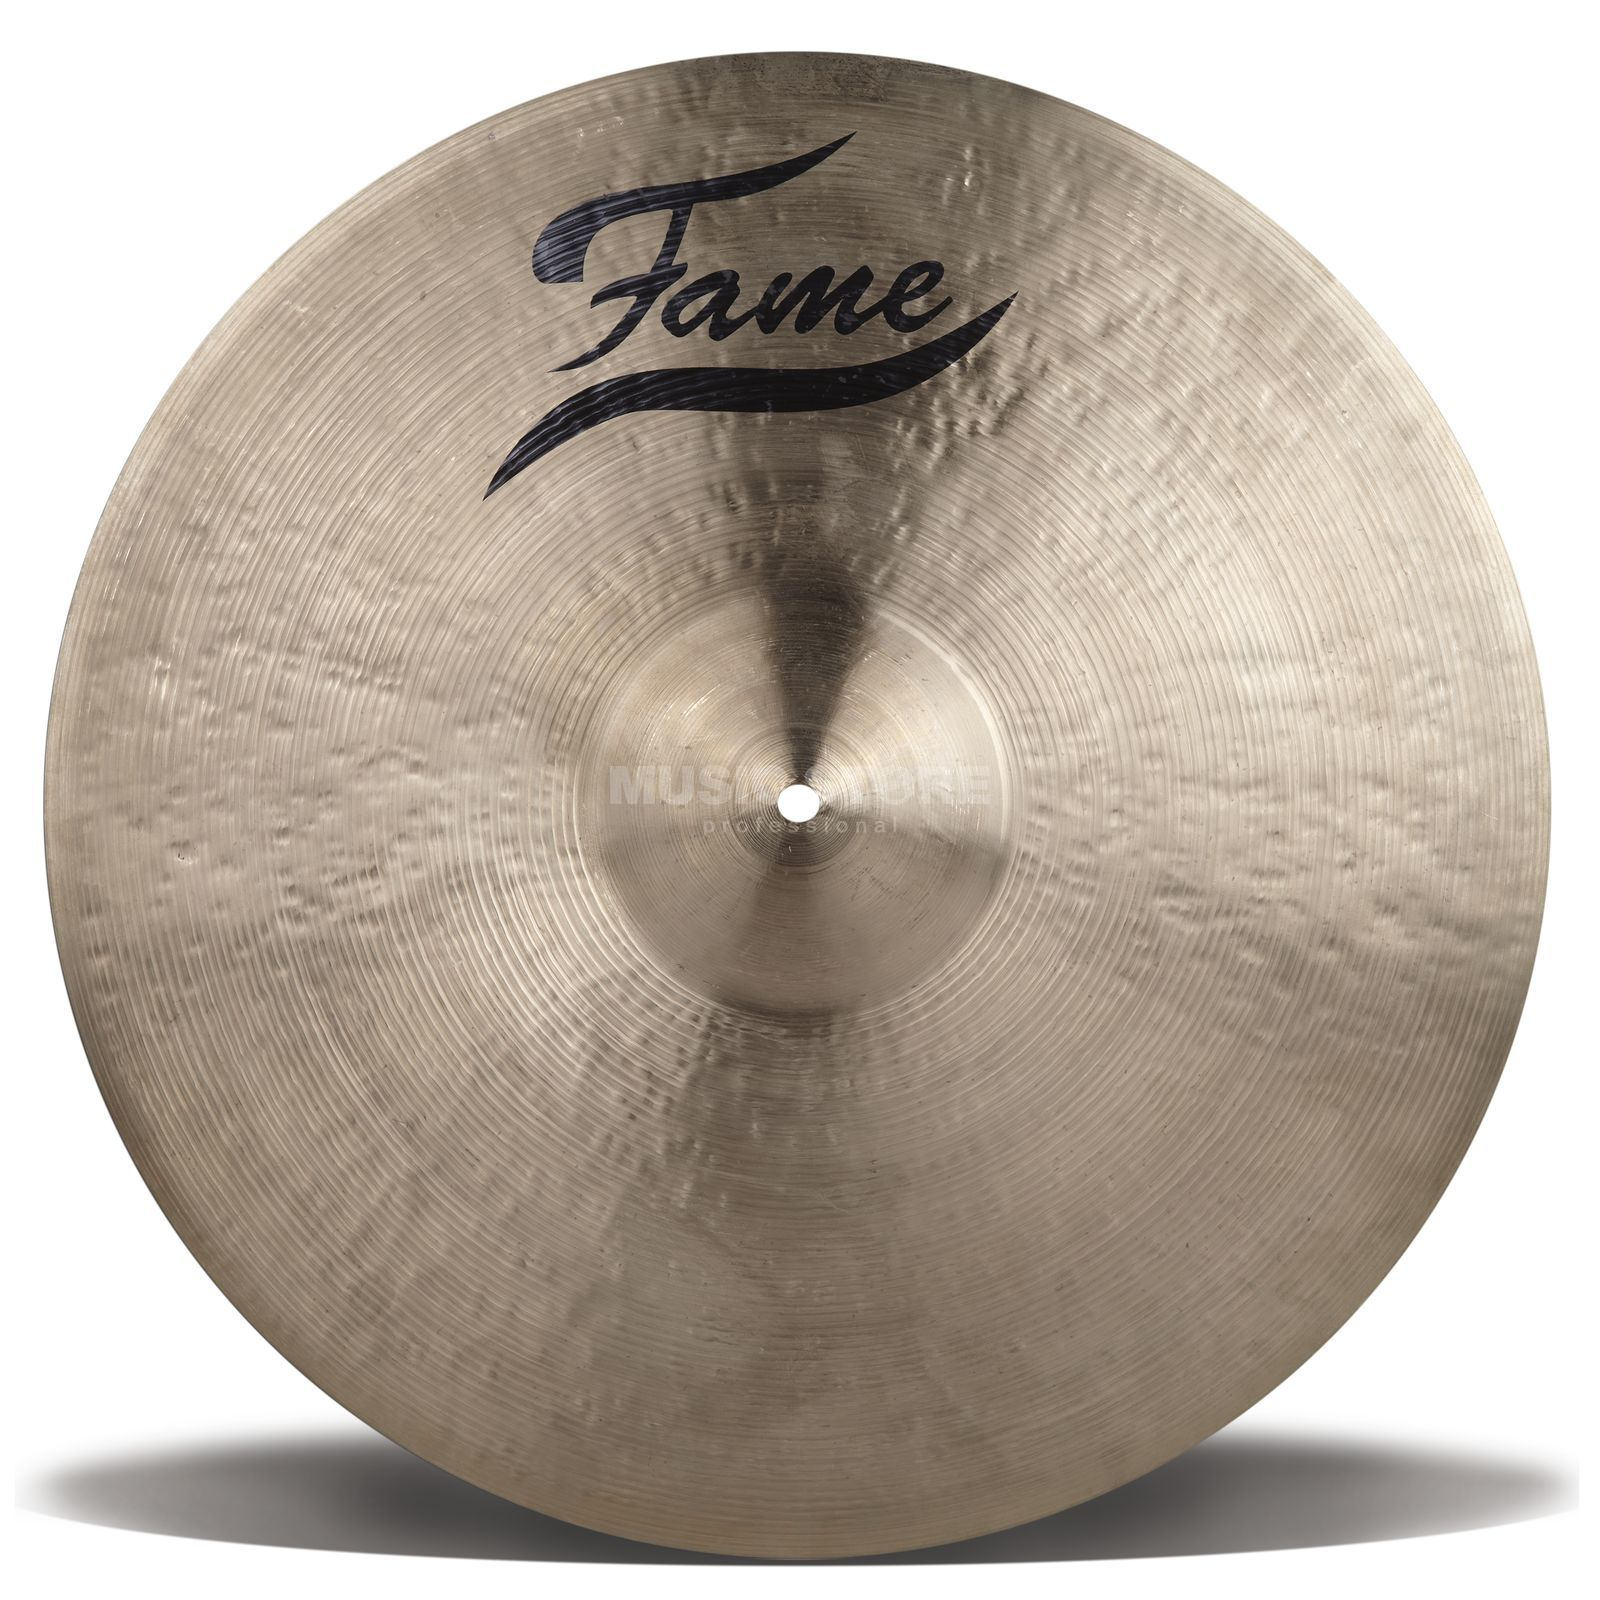 "Fame Masters B20 Heavy Ride 22"", Natural Finish Produktbillede"